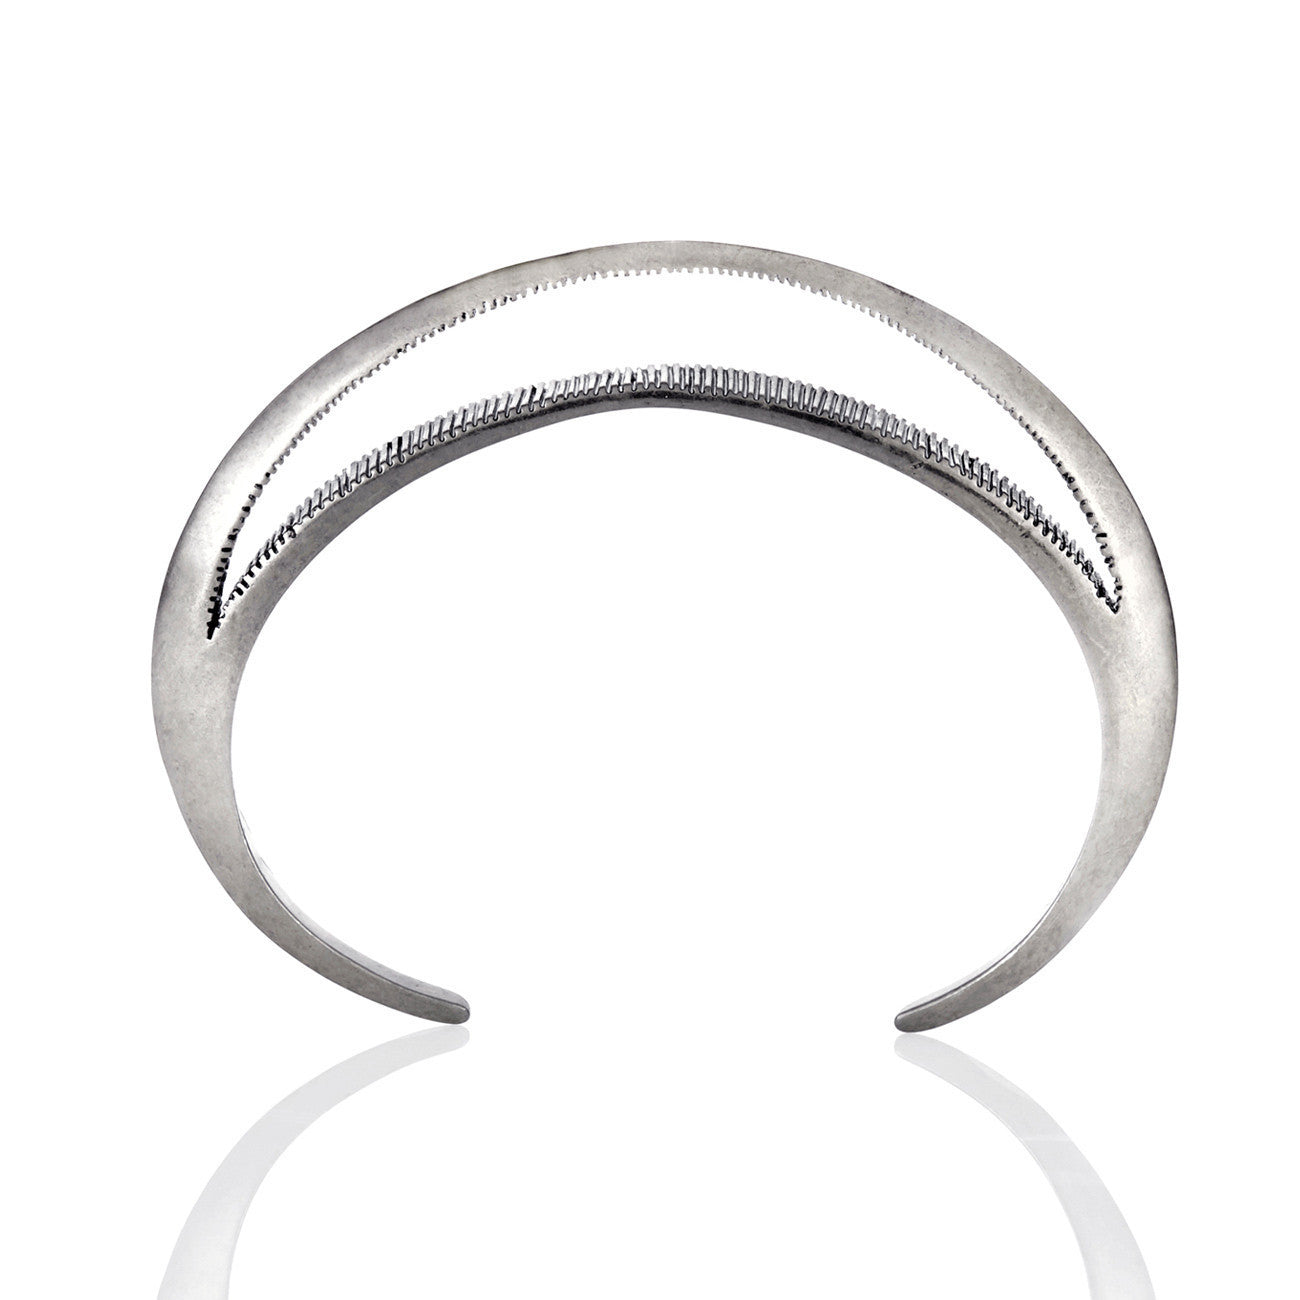 Moon Bangle in Silver - Crescent Moon Cuff by Jenny Bird